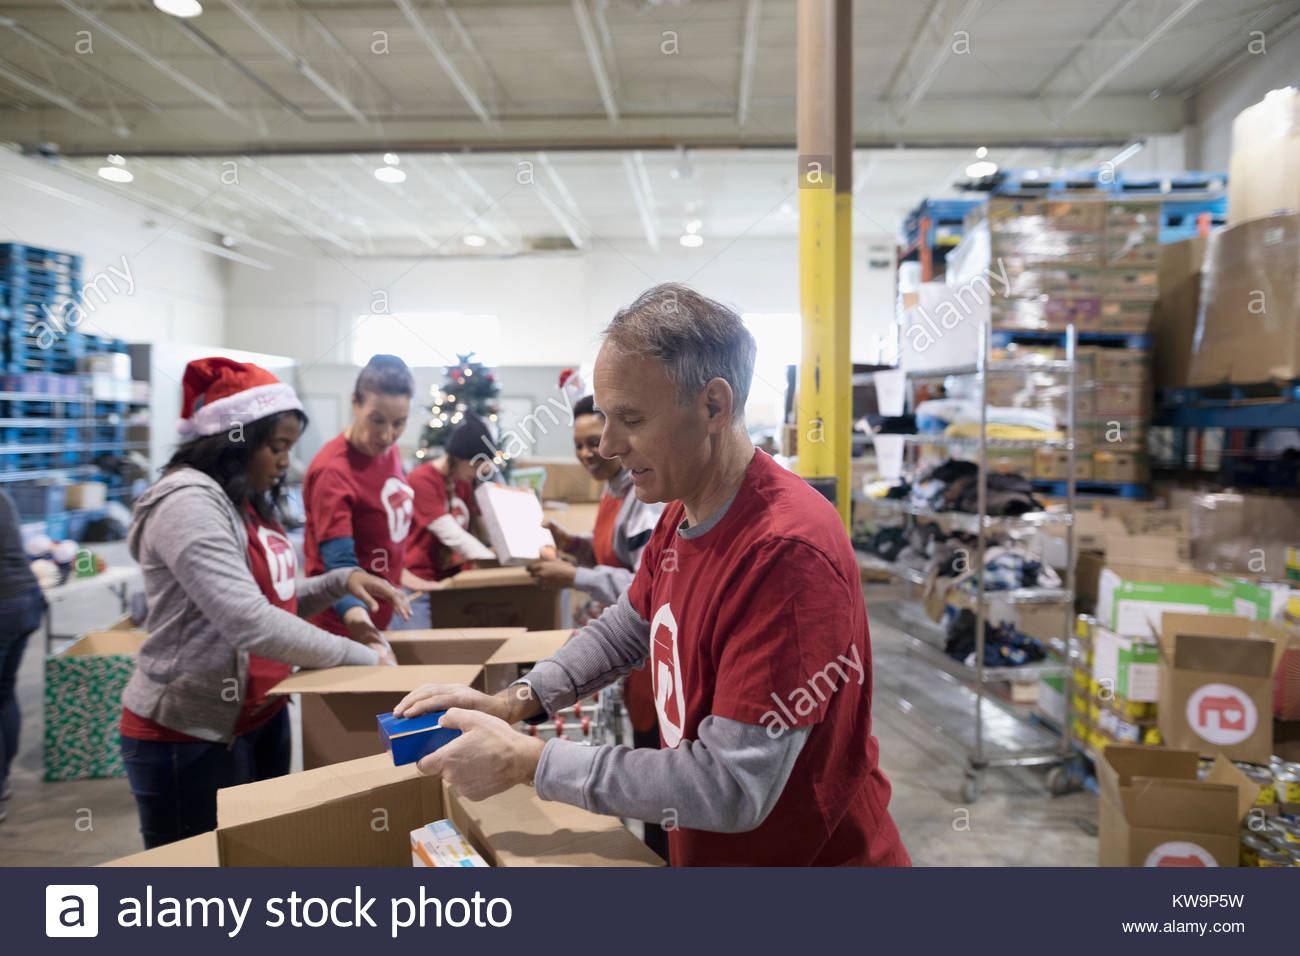 Male volunteer filling Christmas donation boxes in warehouse - Stock Image